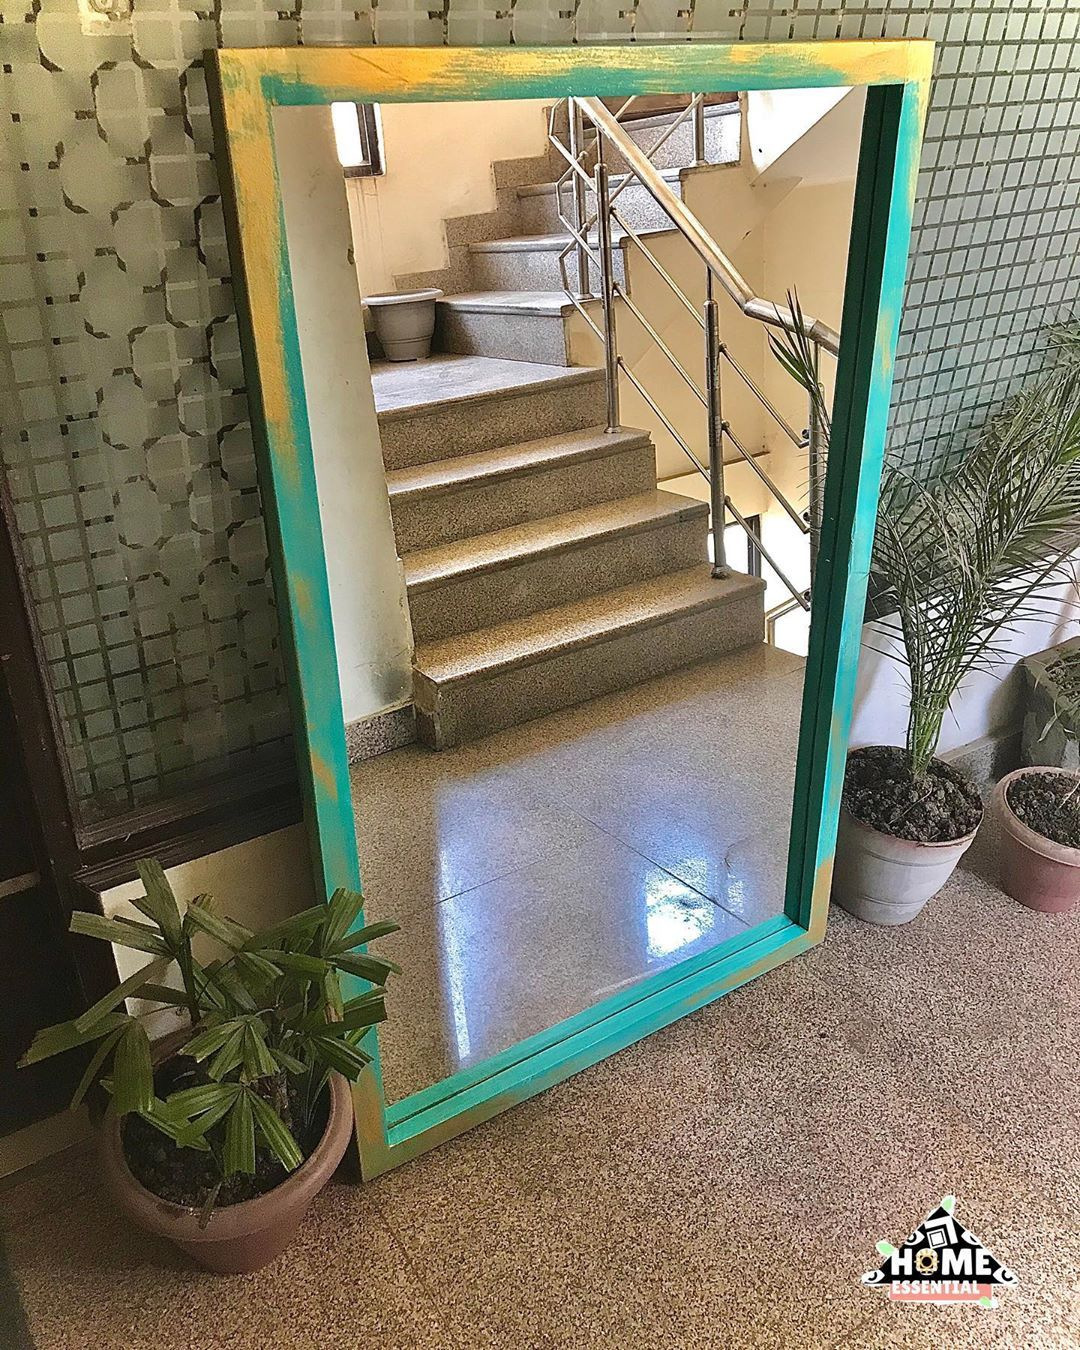 Order this beautiful 5*3 ft big mirror to make your everyday look beautiful 🌟✨. Free delivery (serving only in Delhi, Gurugram, Faridabad, Ghaziabad, Noida and Greater Noida).